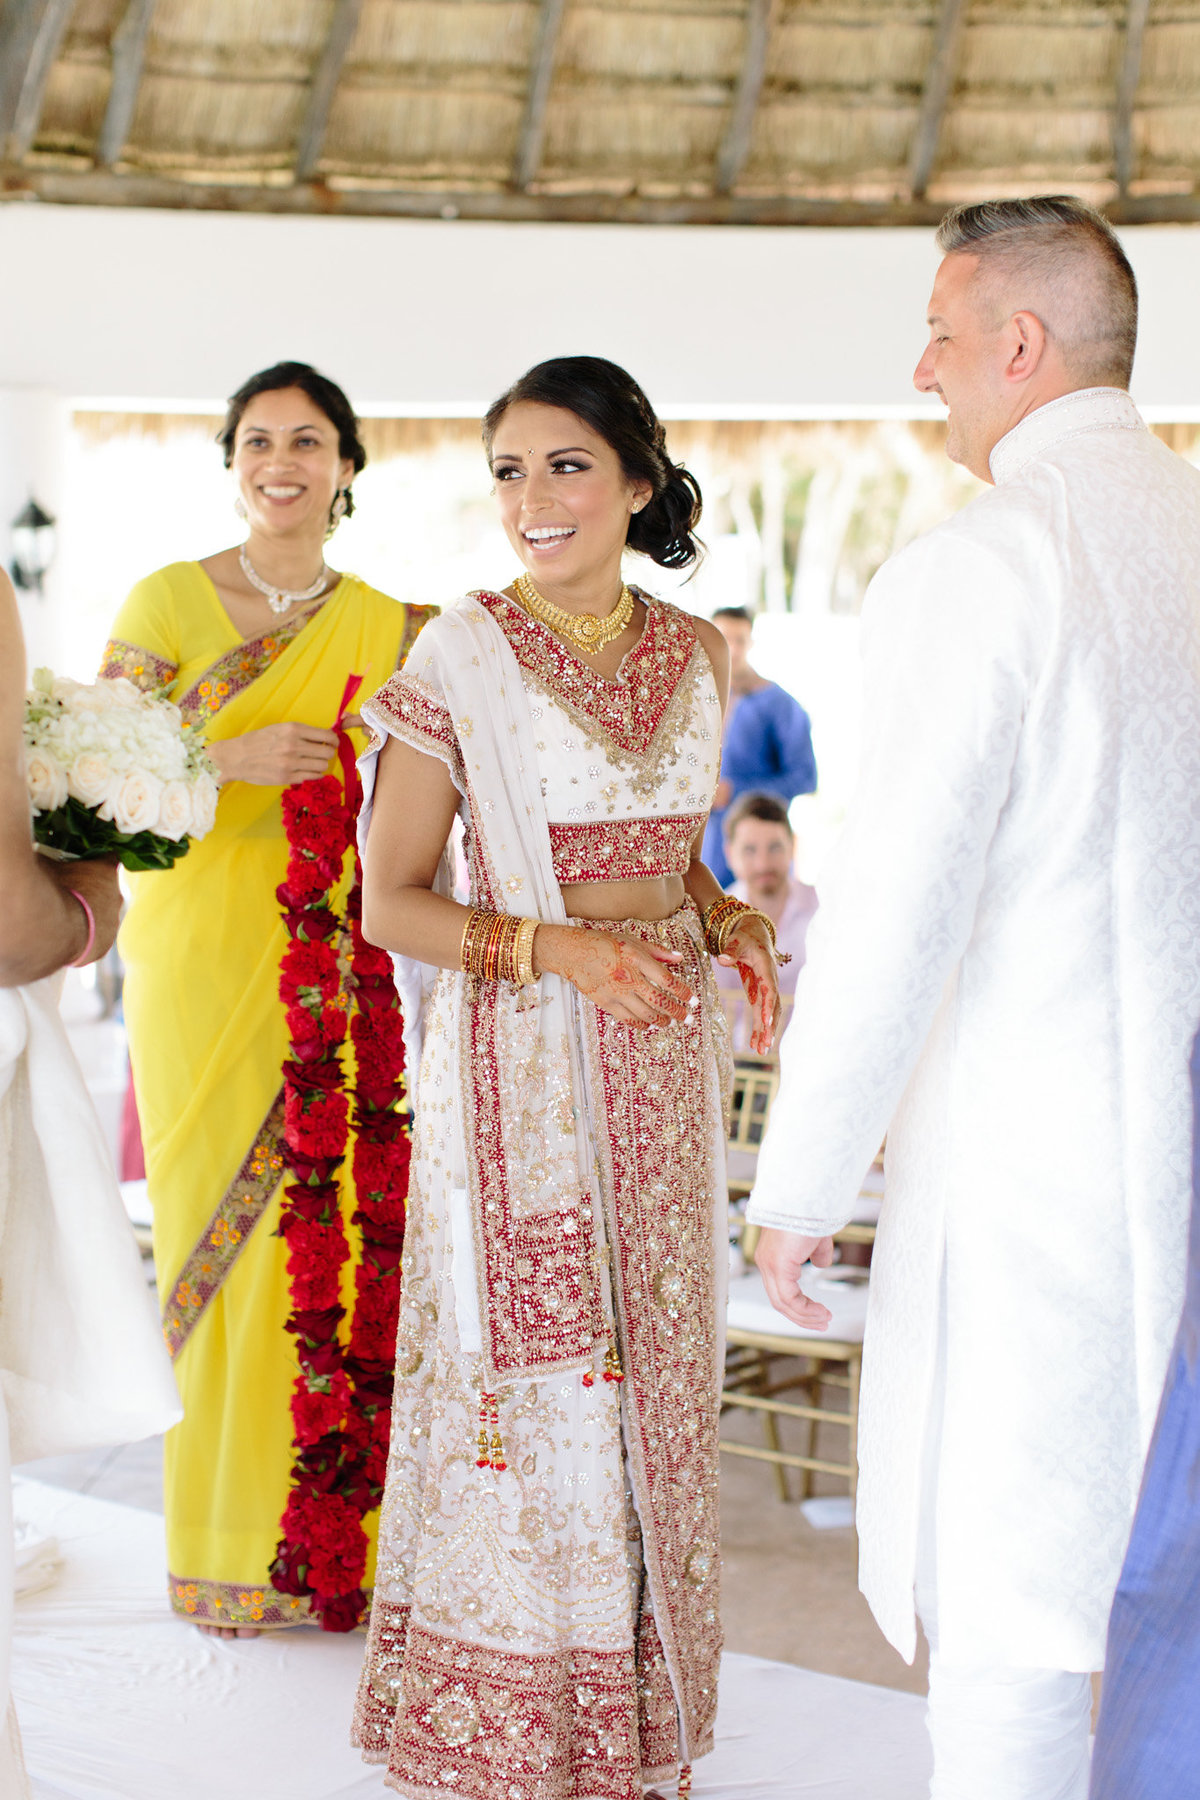 A bride is glowing in her sari.  Emotion captured by top destination photographer Rebecca Cerasani.